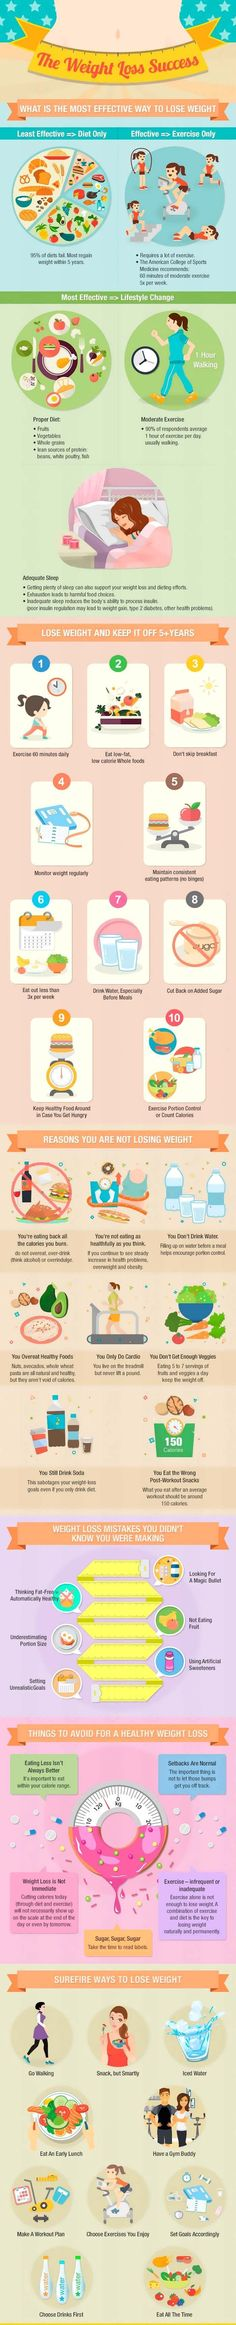 Losing 23 pounds in 21 days would change your life. But how on earth can you lose so much weight so fast. And how can you do it in a SAFE manner? The most effective ways to lose weight